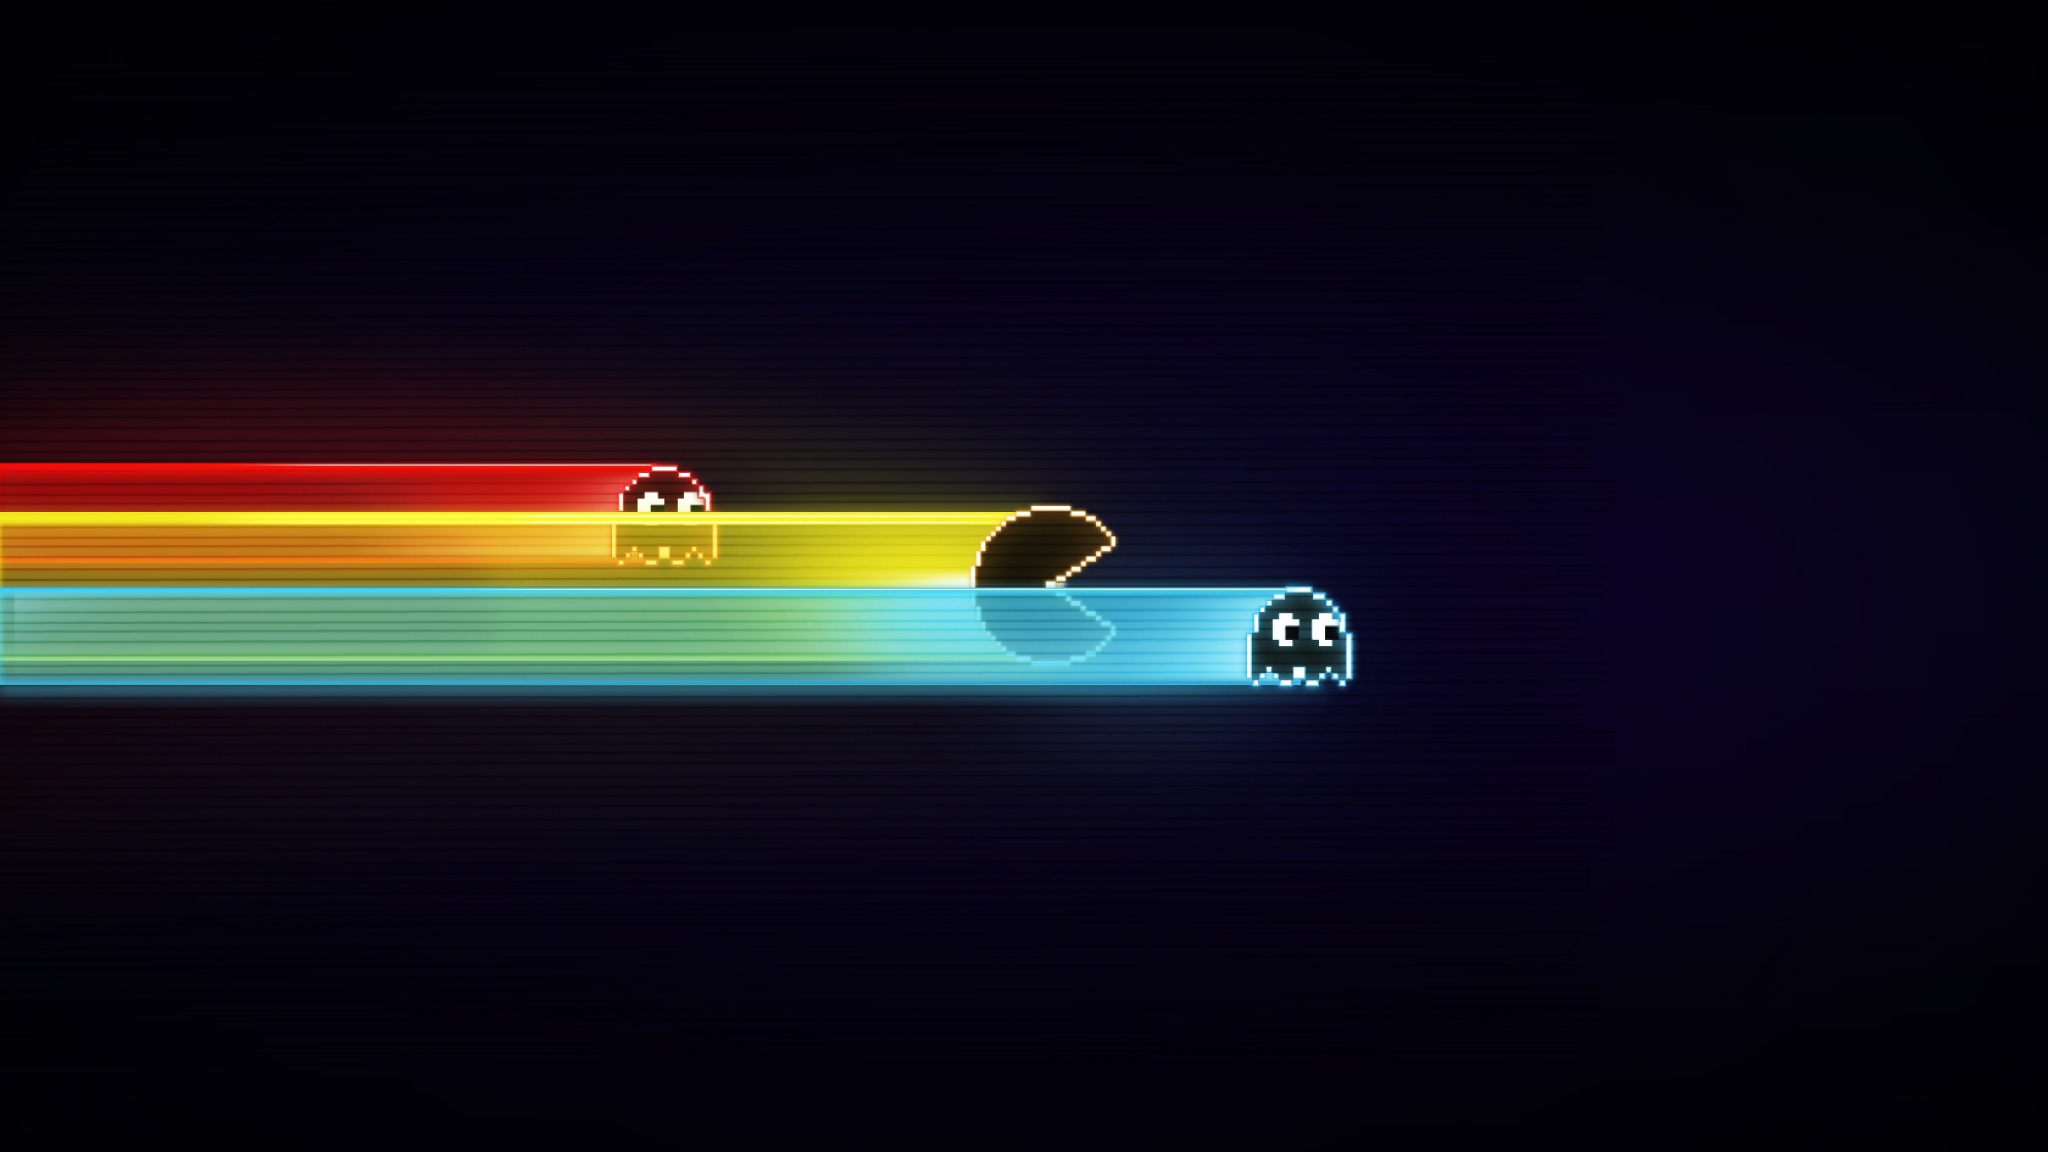 Wallpaper 2048x1152 Pacman Game Graphics Speed Harassment HD HD 2048x1152